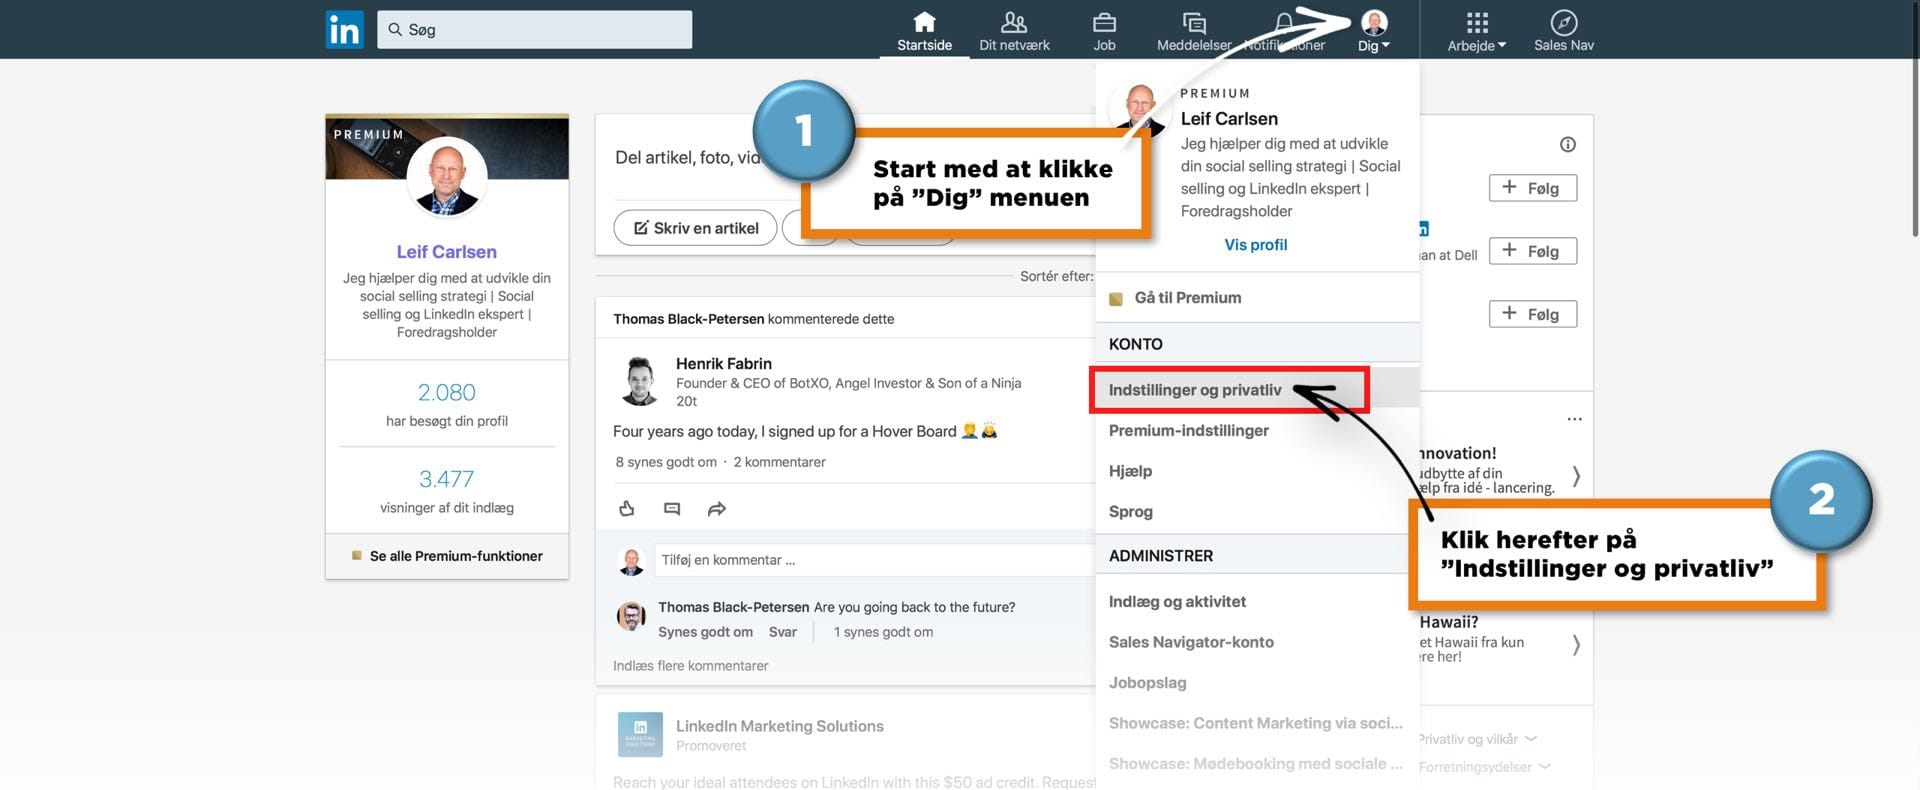 Den ultimative guide til en professionel LinkedIn profil